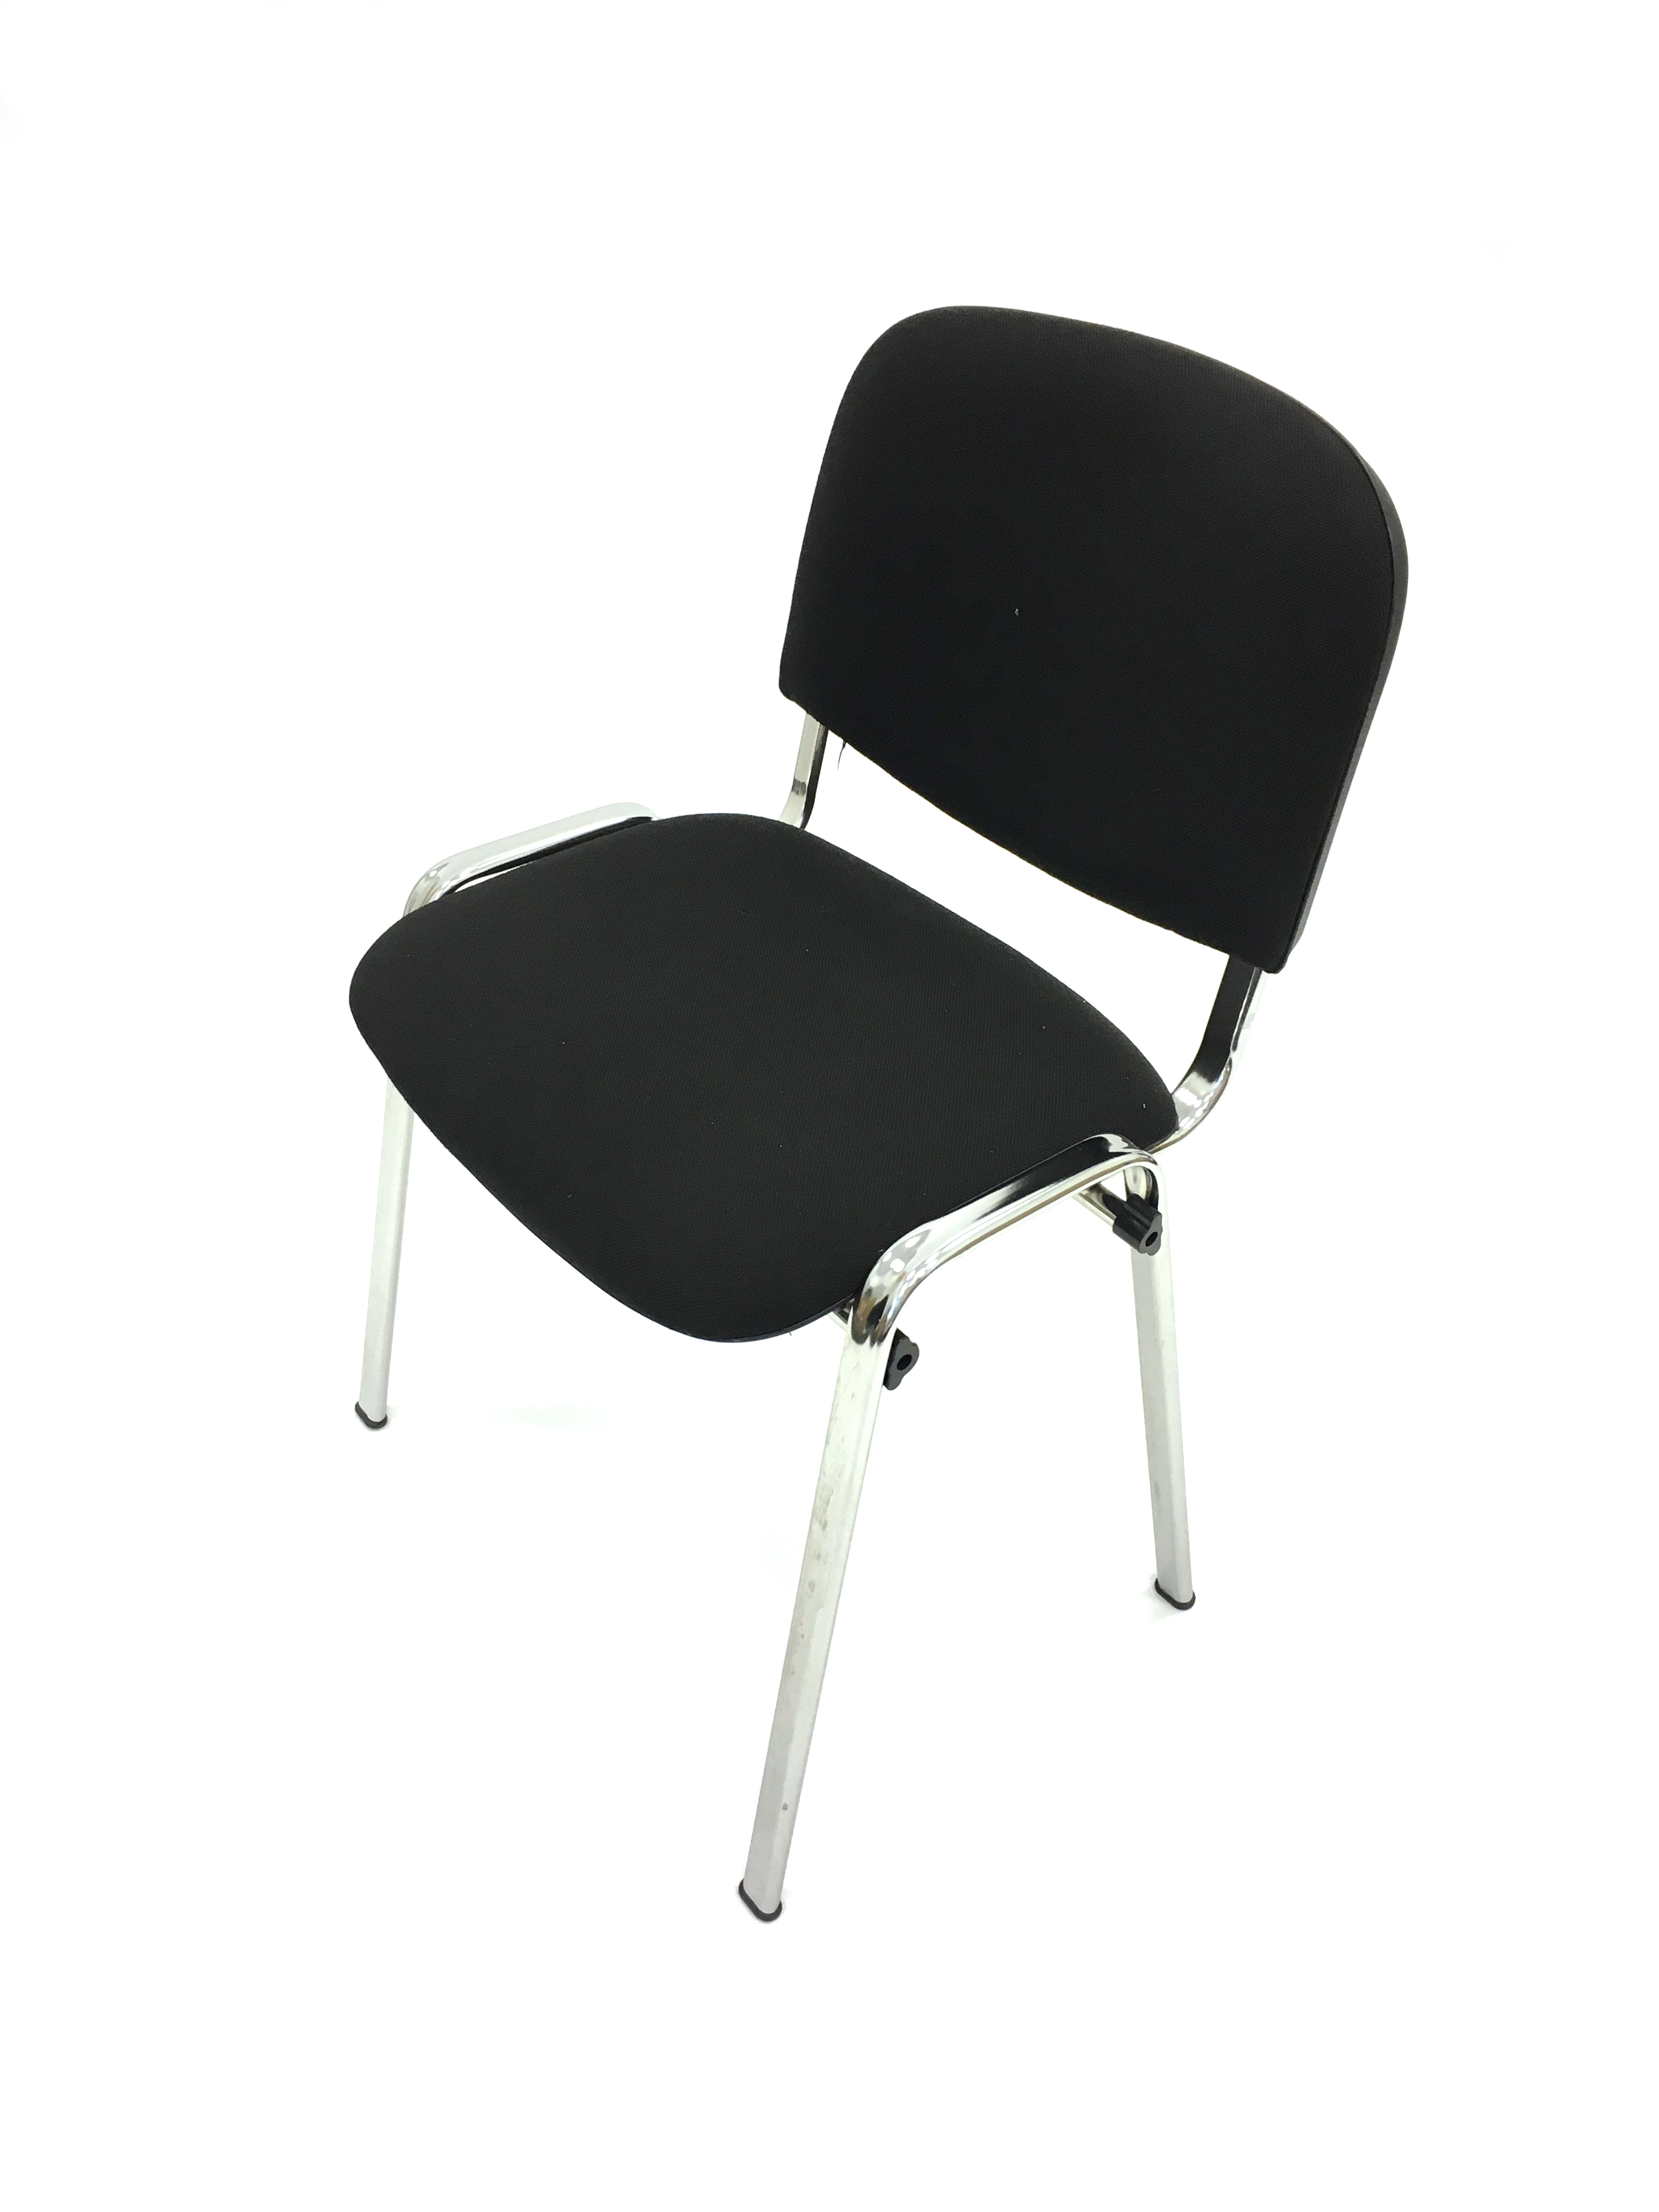 Black Conference Chair Hire - Silver Frame Chairs - BE Event Hire